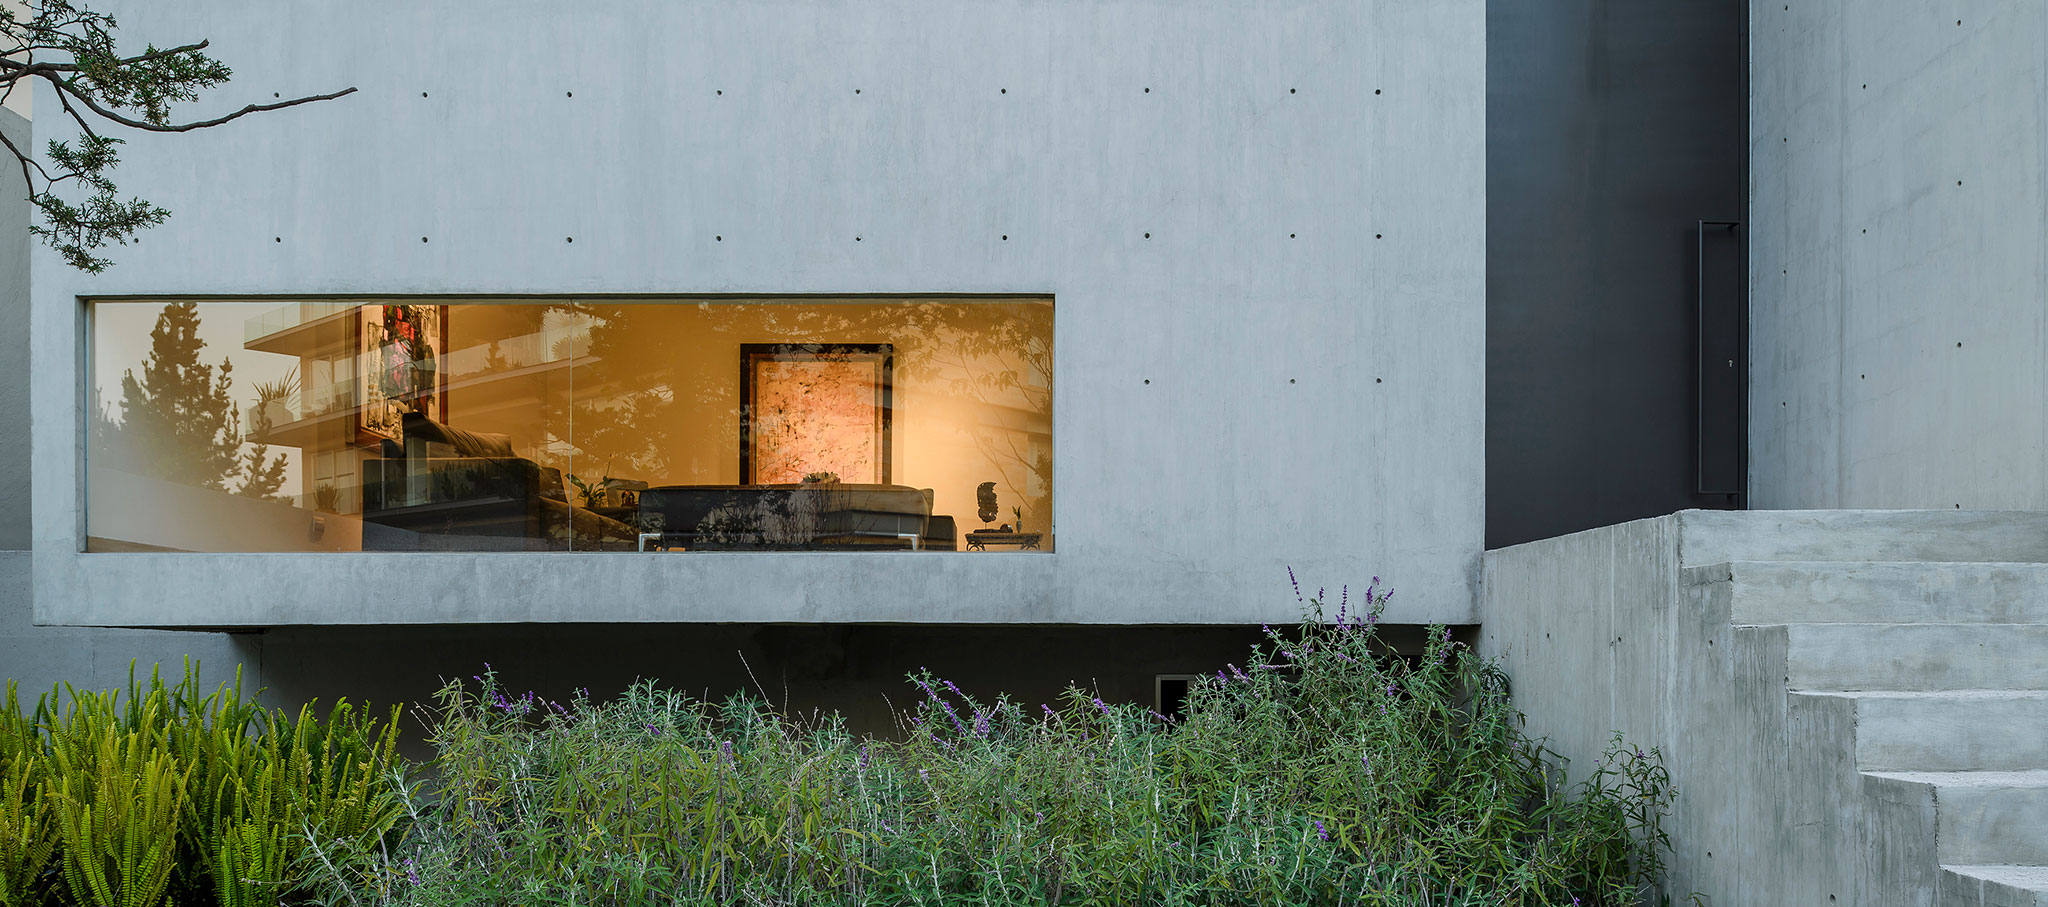 Entrance. CAFM House by RZERO. Photograph by Moritz Bernoully